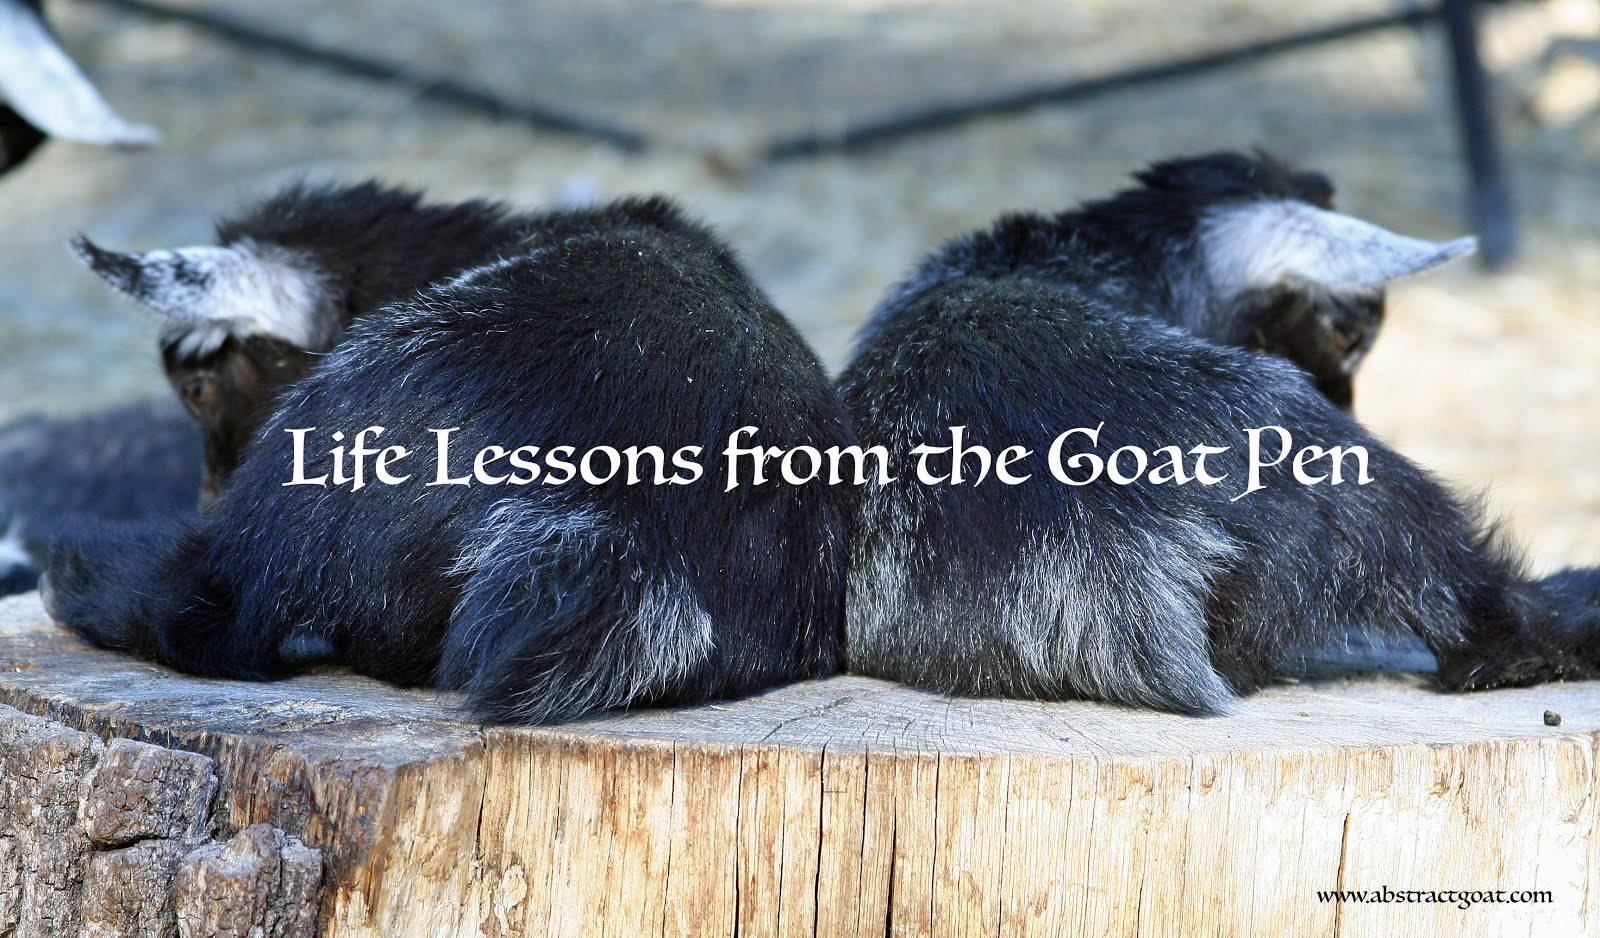 Life Lessons from the Goat Pen